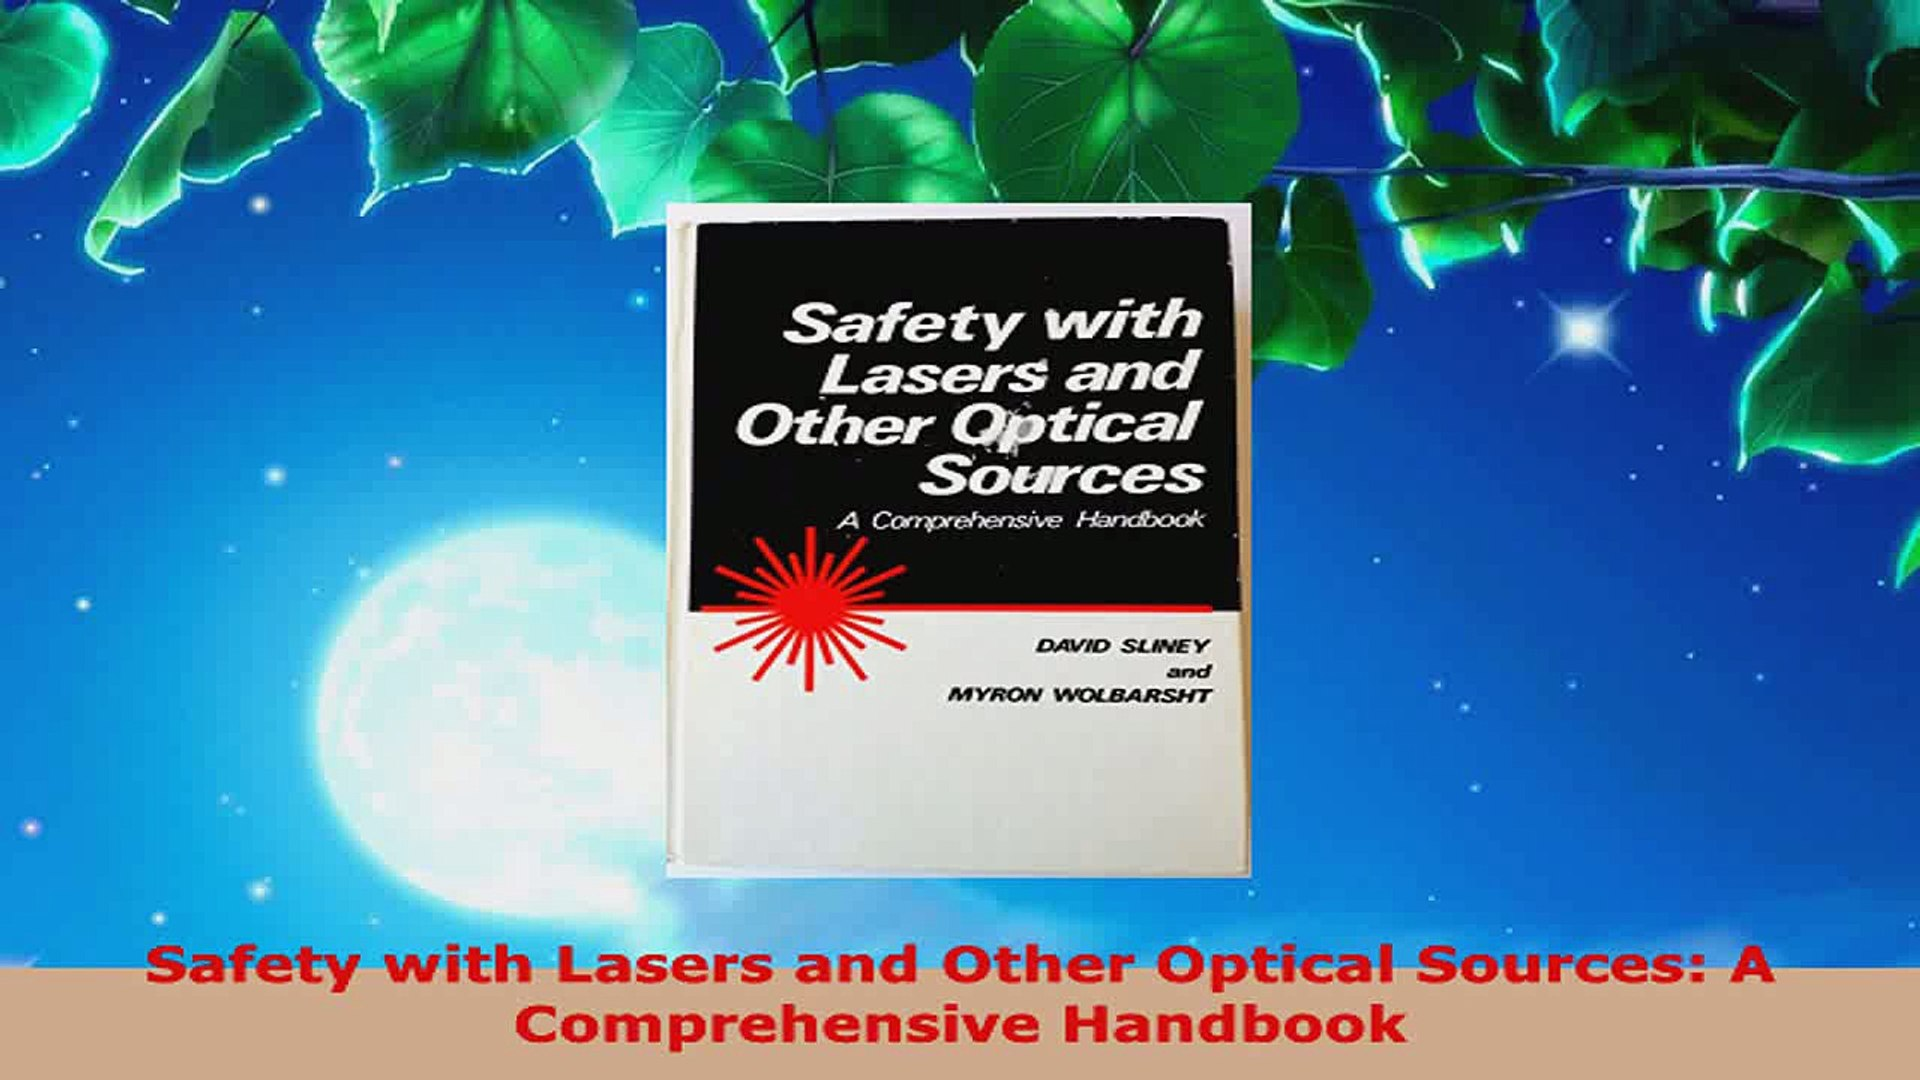 Safety with Lasers and Other Optical Sources: A Comprehensive Handbook